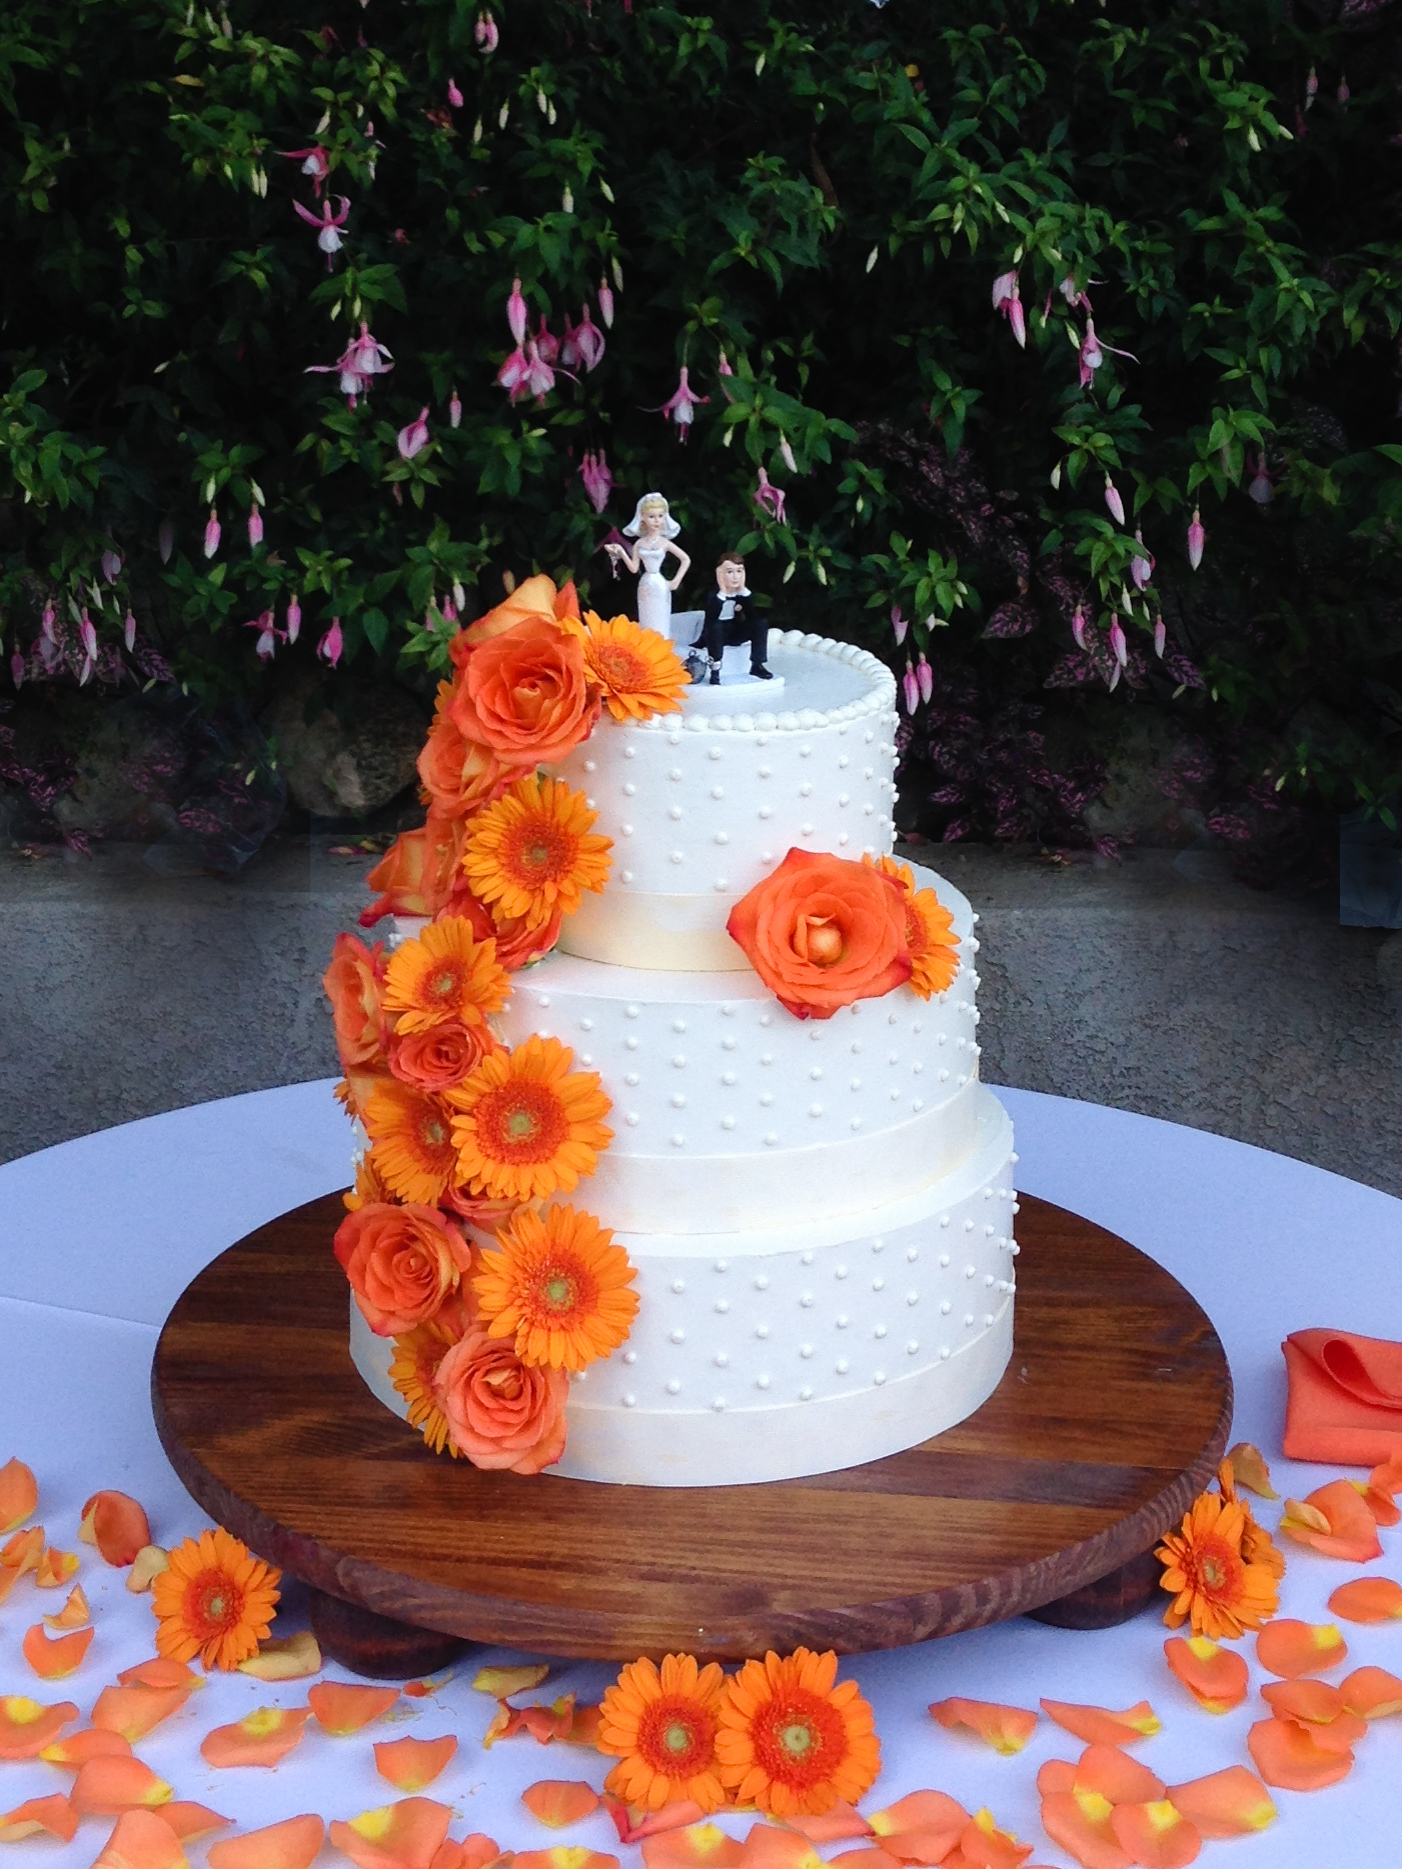 wedding-cake-dots-ribbon-orange-gerber-daisy-marie-shannon-confections-1.jpg